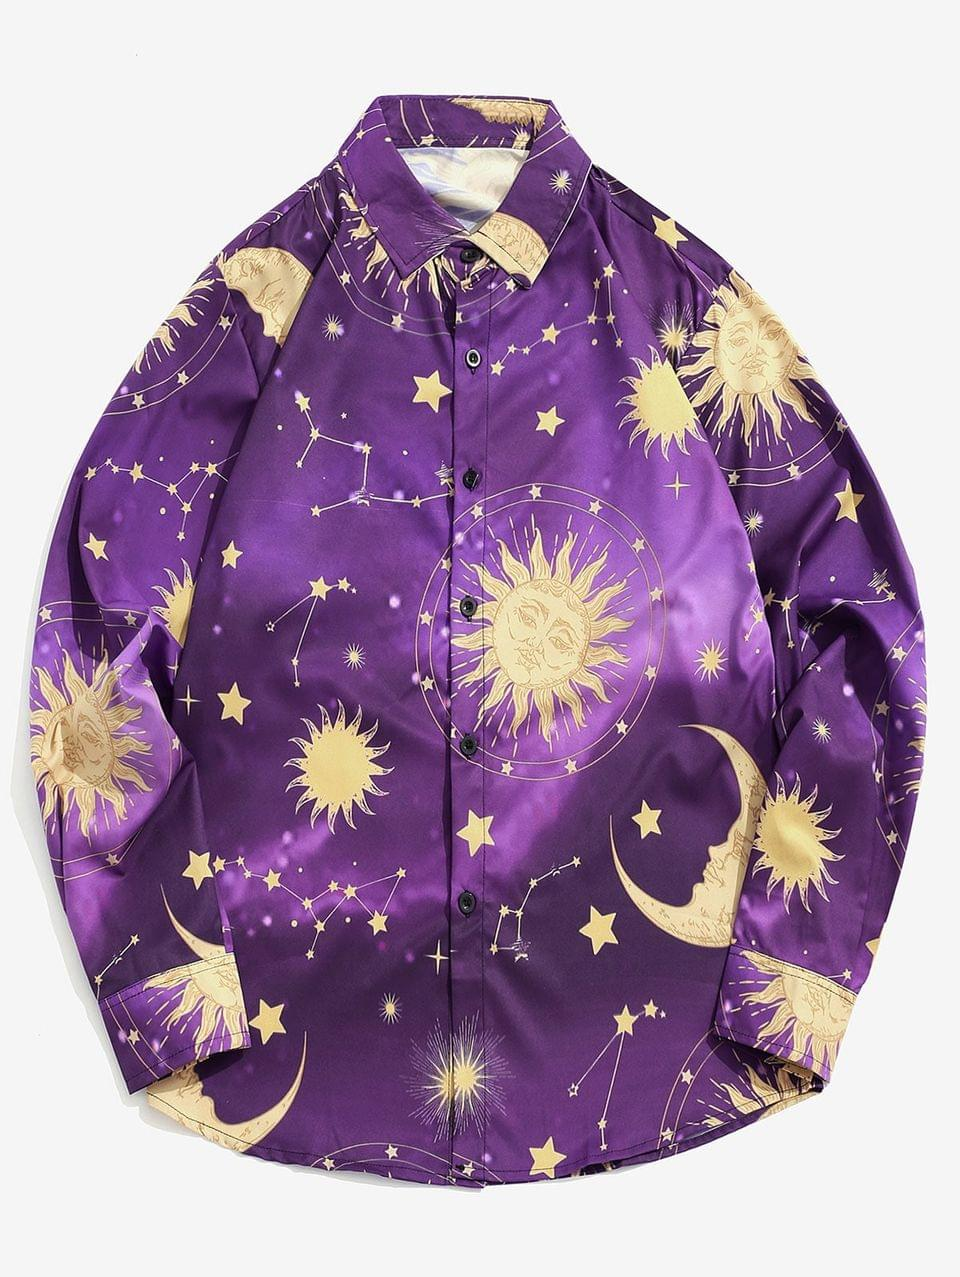 Men's Cartoon Sun Moon And Star Print Long Sleeve Button Shirt - Purple Iris S